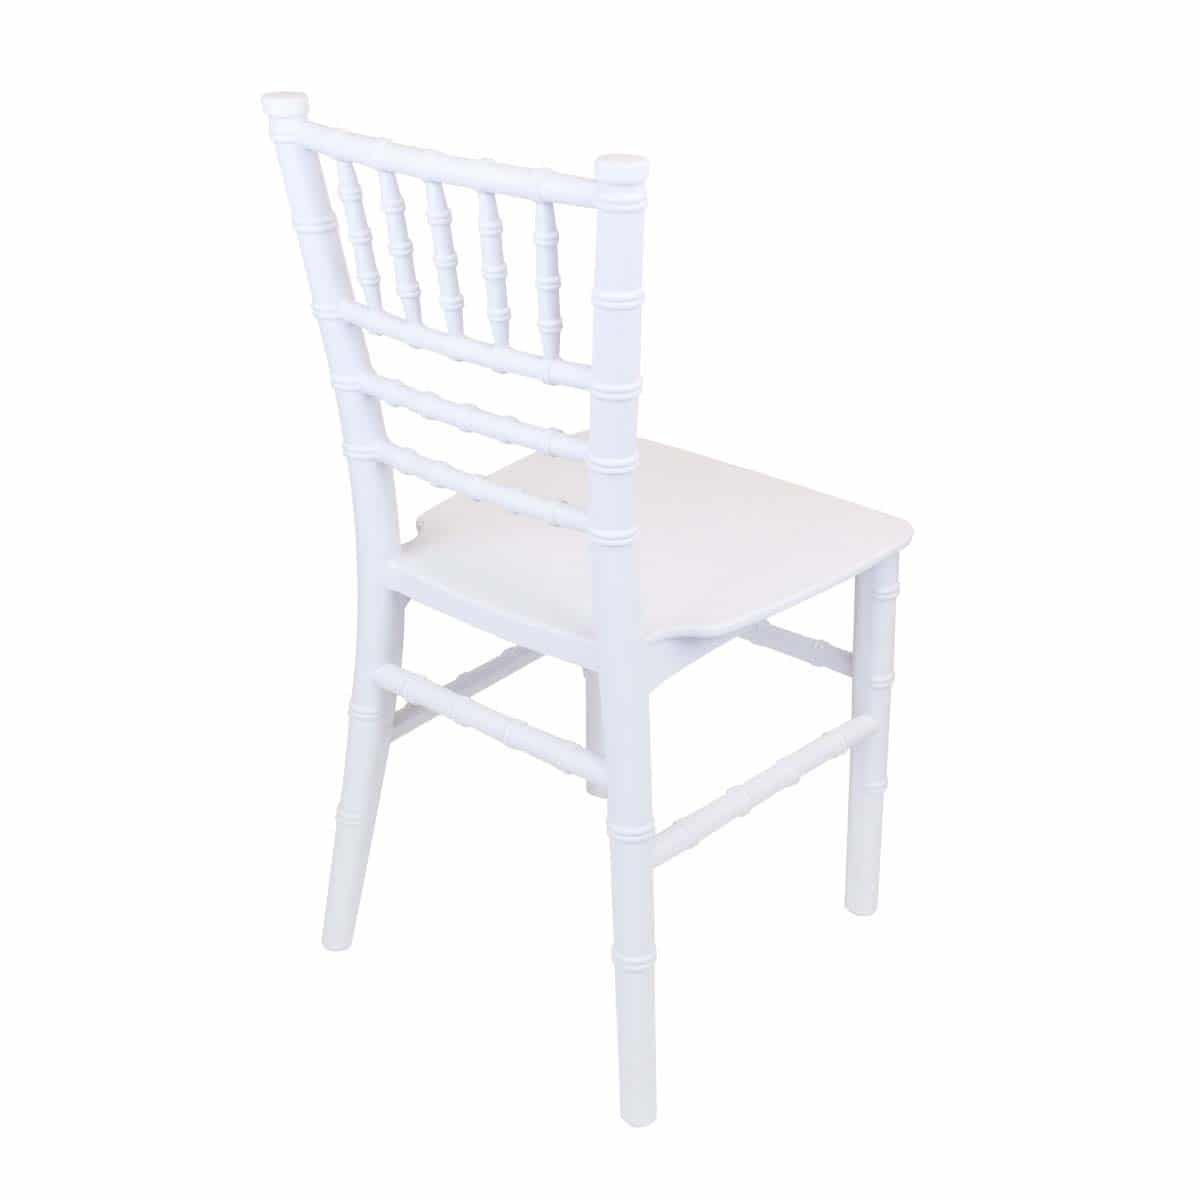 Astounding Child Size Tiffany Chair The Classic Chiavari Chair For Kids Ibusinesslaw Wood Chair Design Ideas Ibusinesslaworg